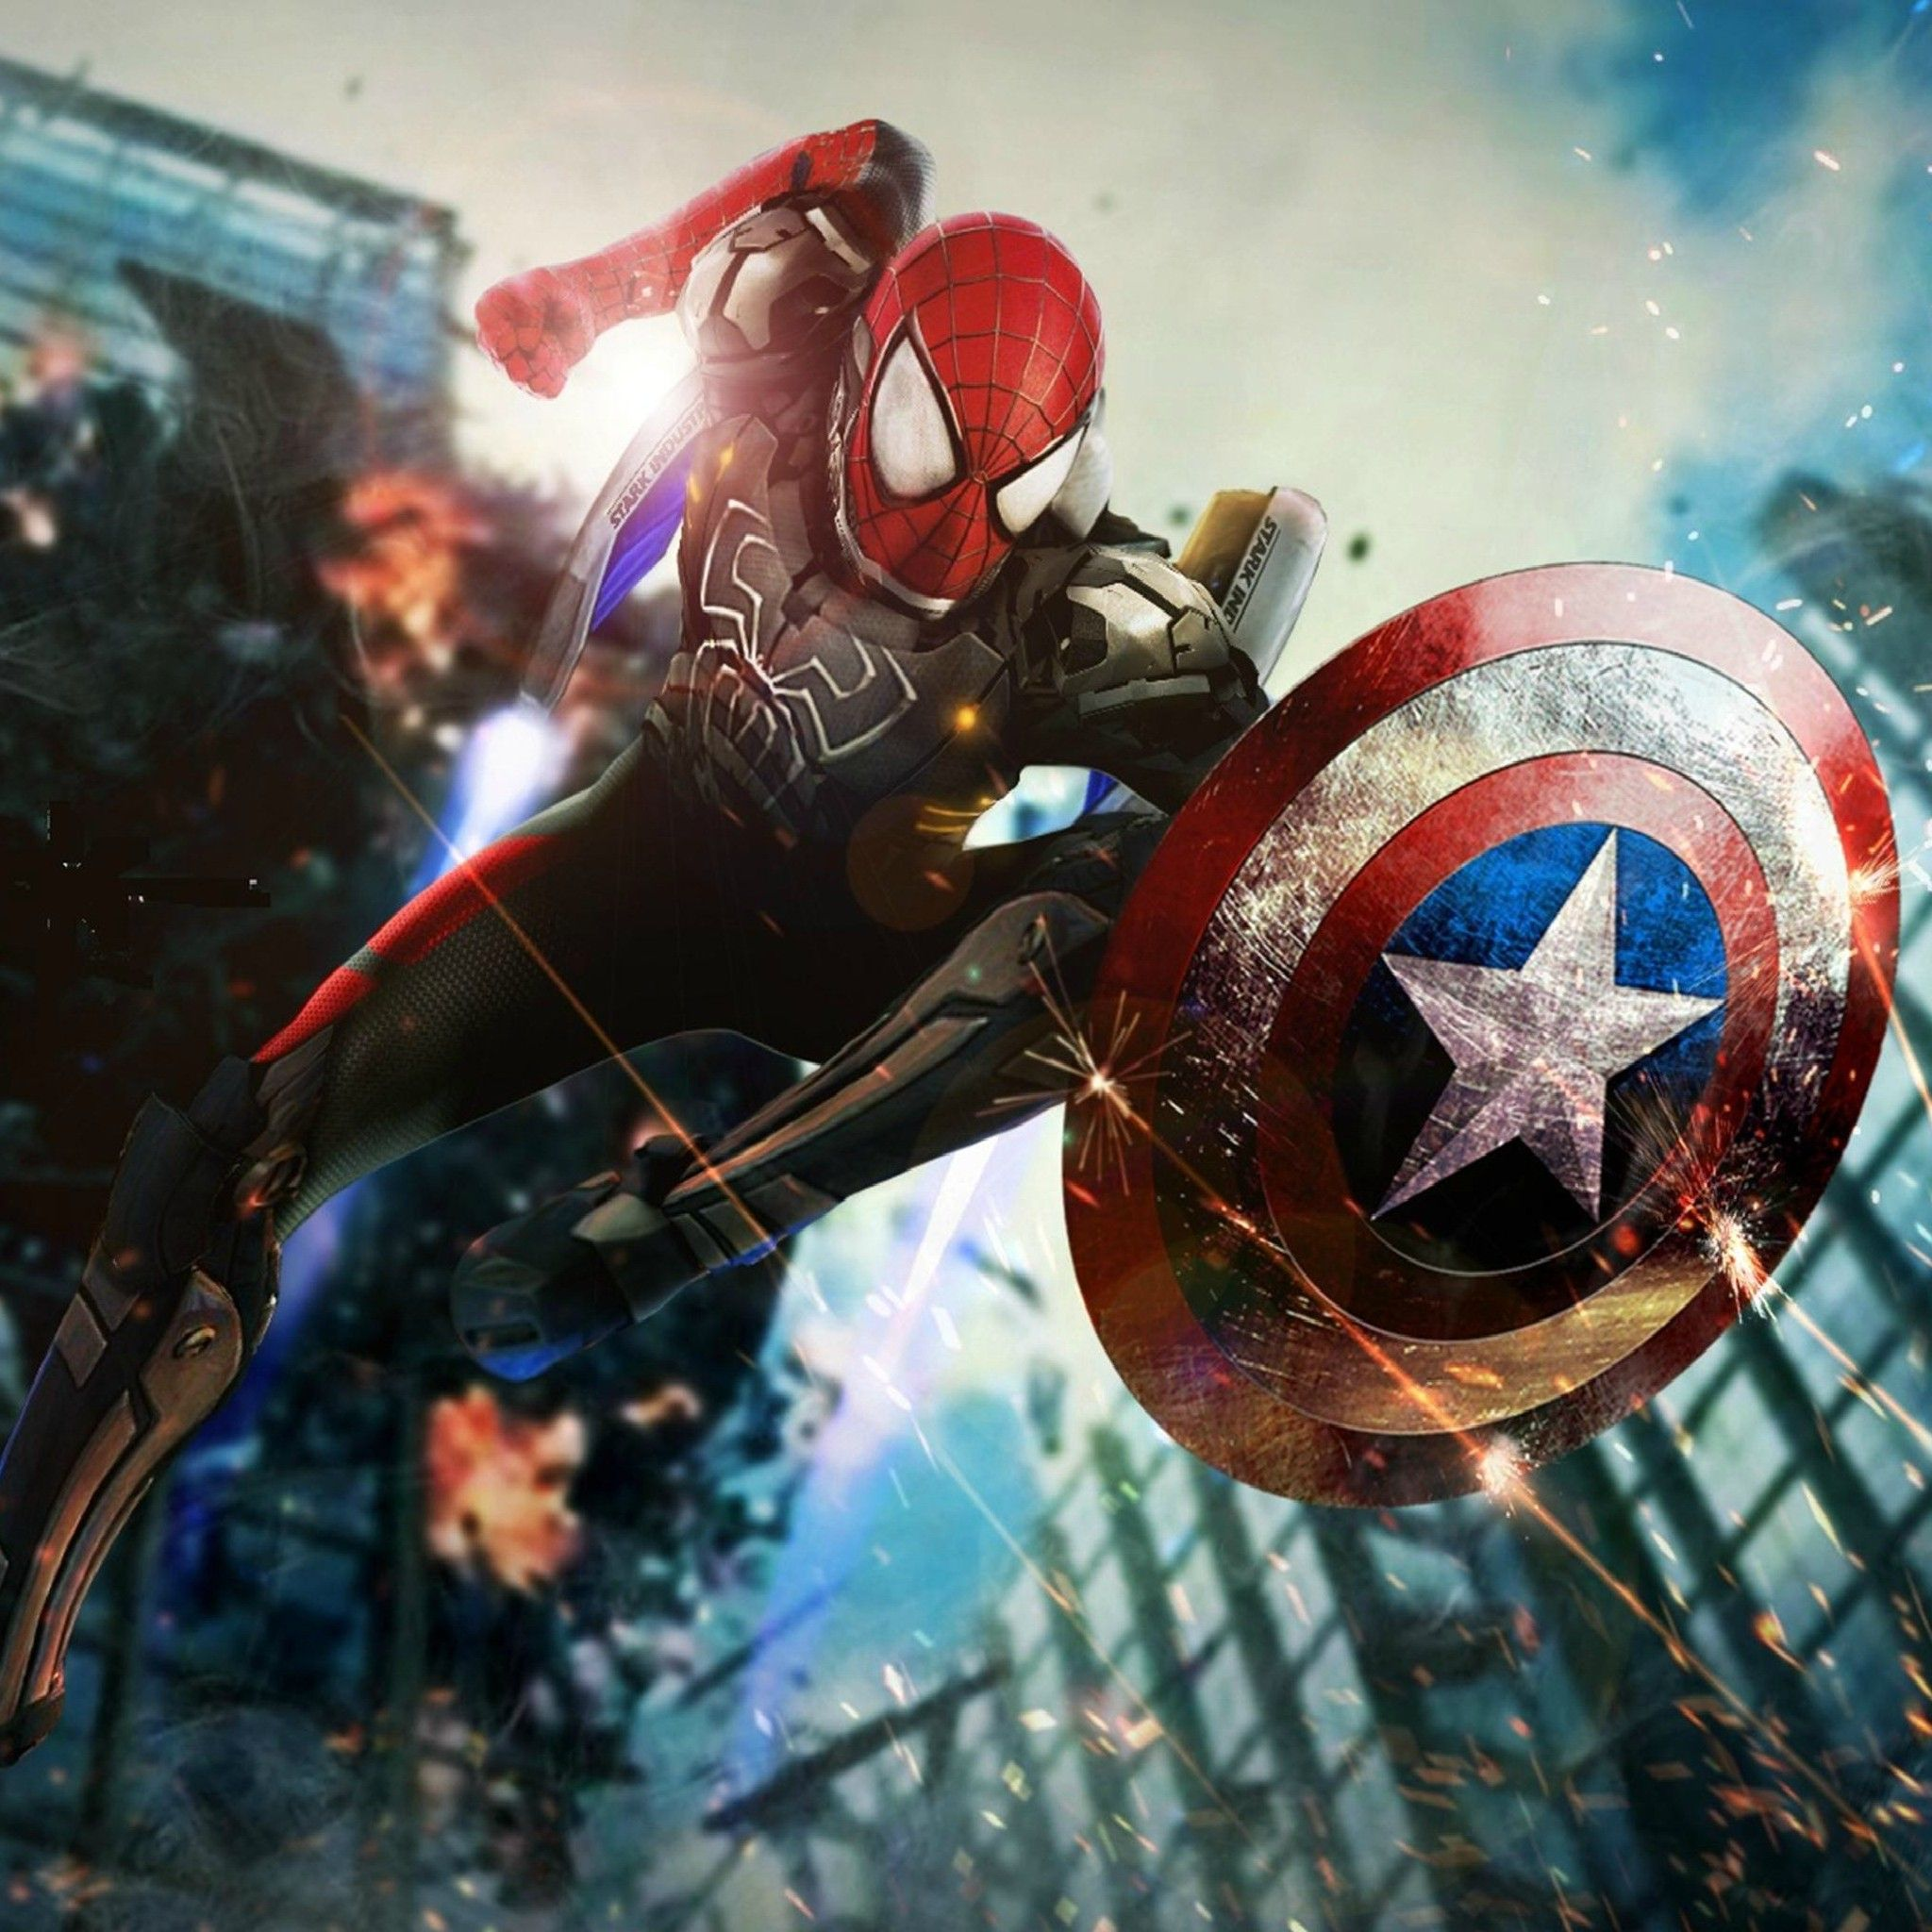 Amazing Spider Man Homecoming Infinity War Wallpaper - 4e4497bd3c38bd1f47b7dafd5711884e  Picture_711389 .jpg